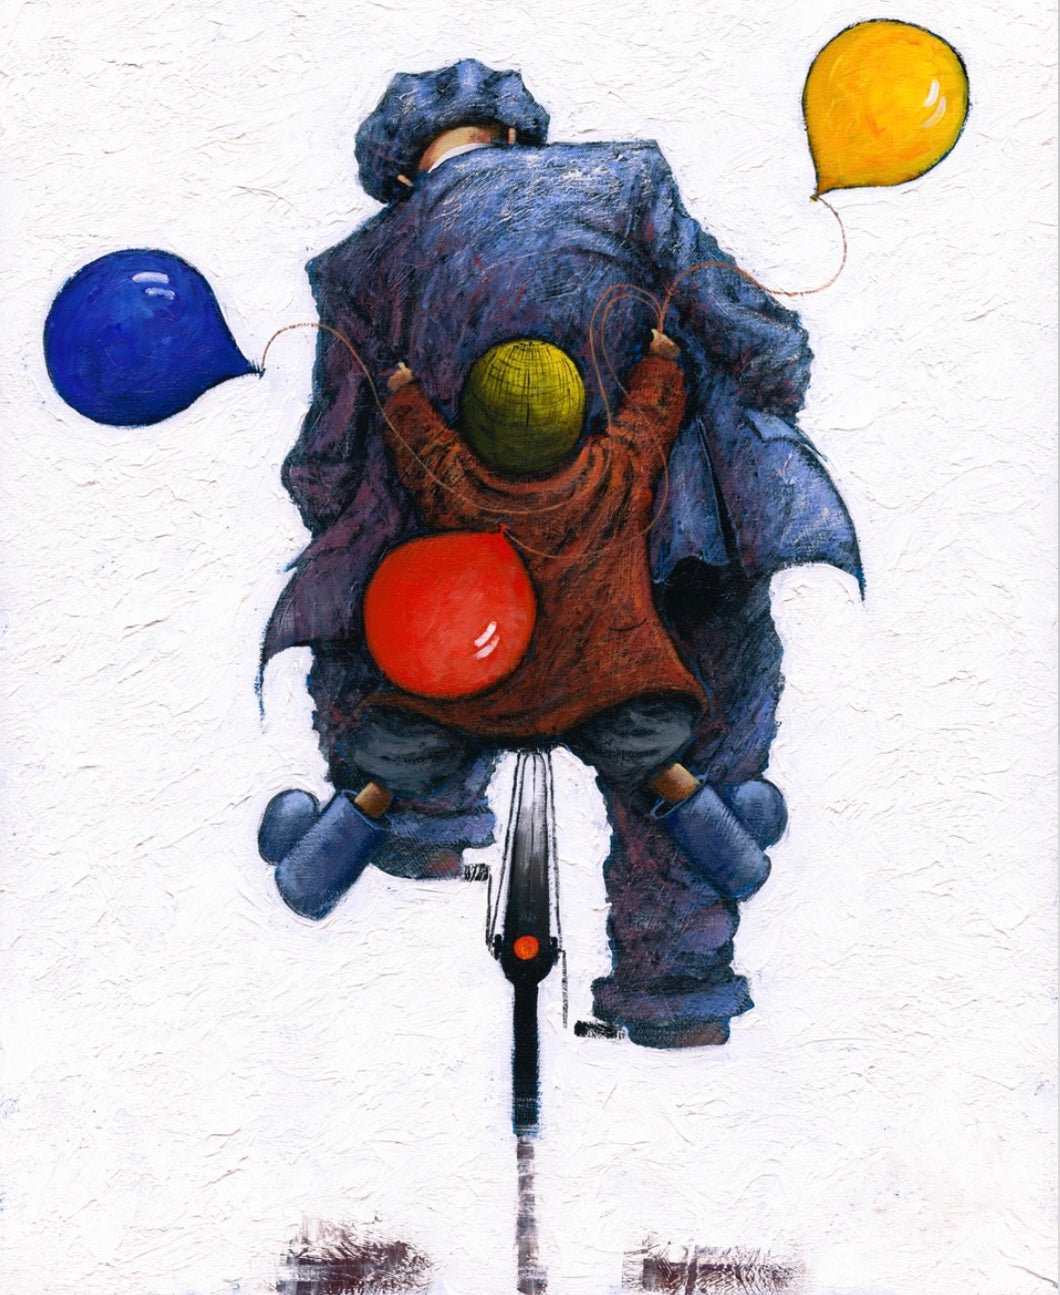 Original hopes and dreams by Alexander Millar